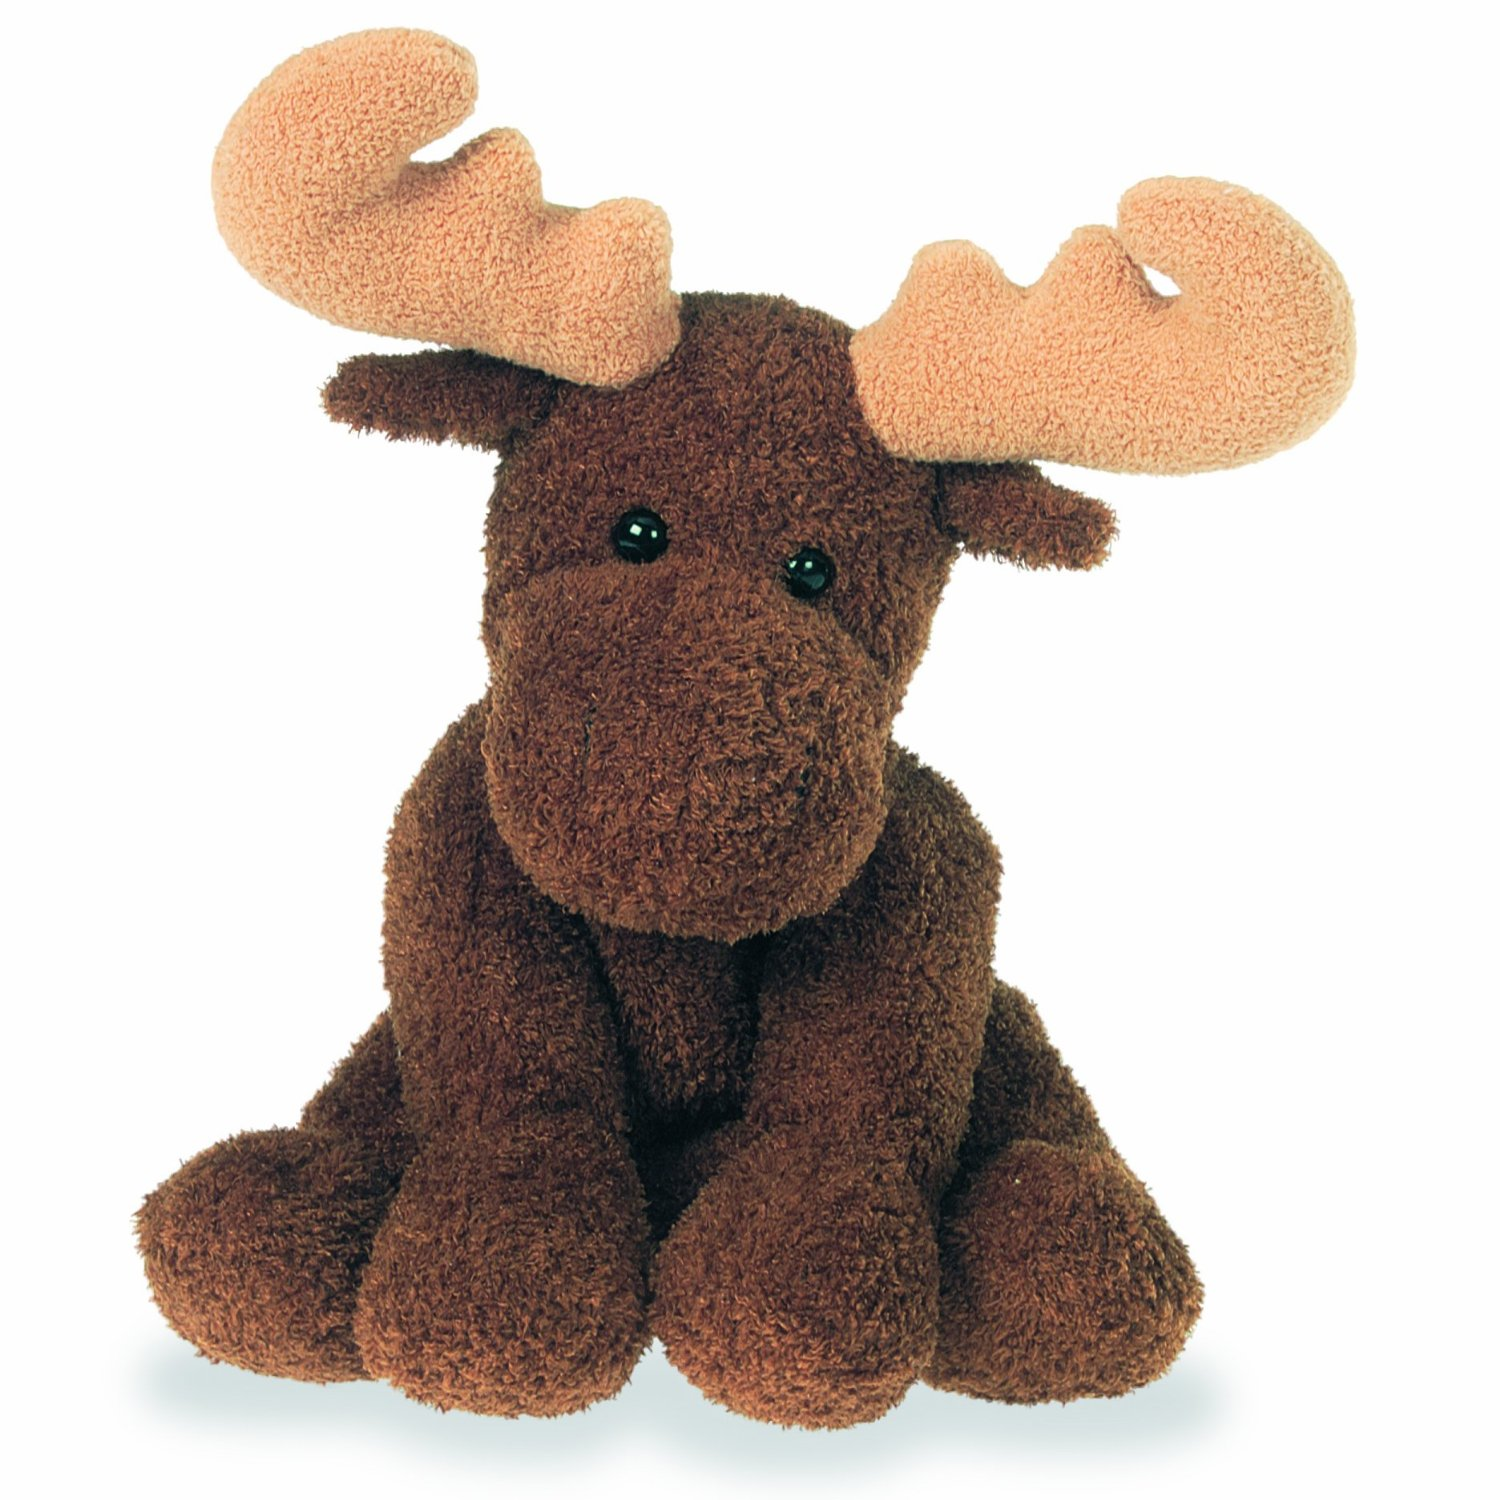 Stuffed Animal Toys : Sweet rascals marlon moose quot by mary meyer